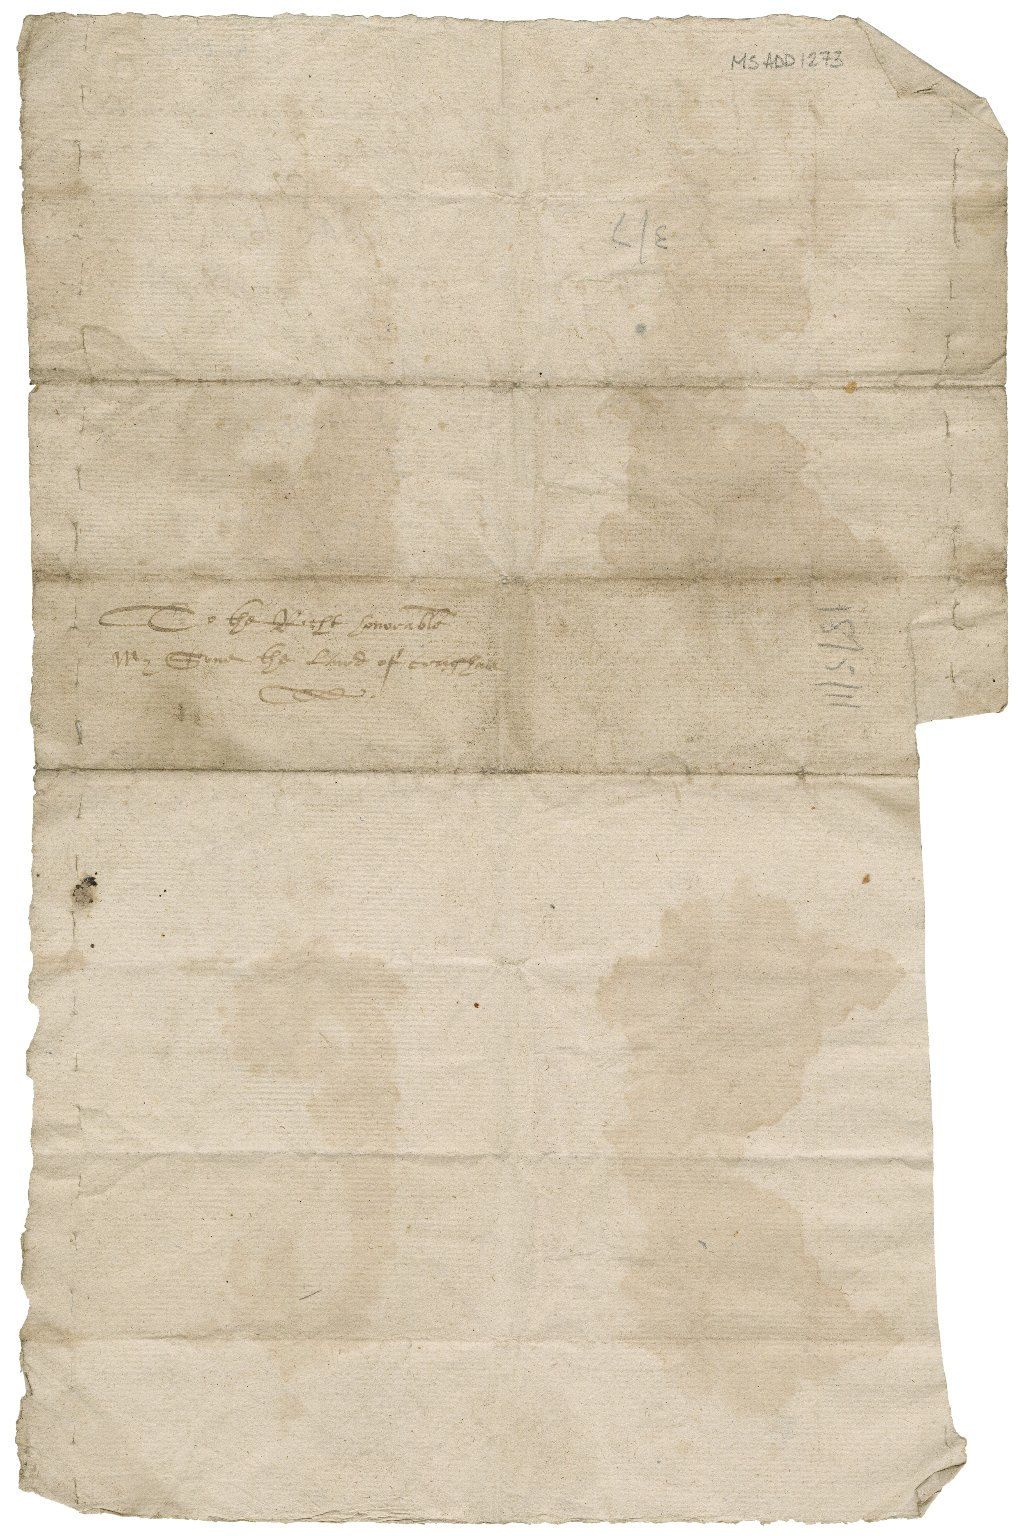 Letter from William Fullerton of that Ilk to Sylvester Rattray of Craighall, Meigle